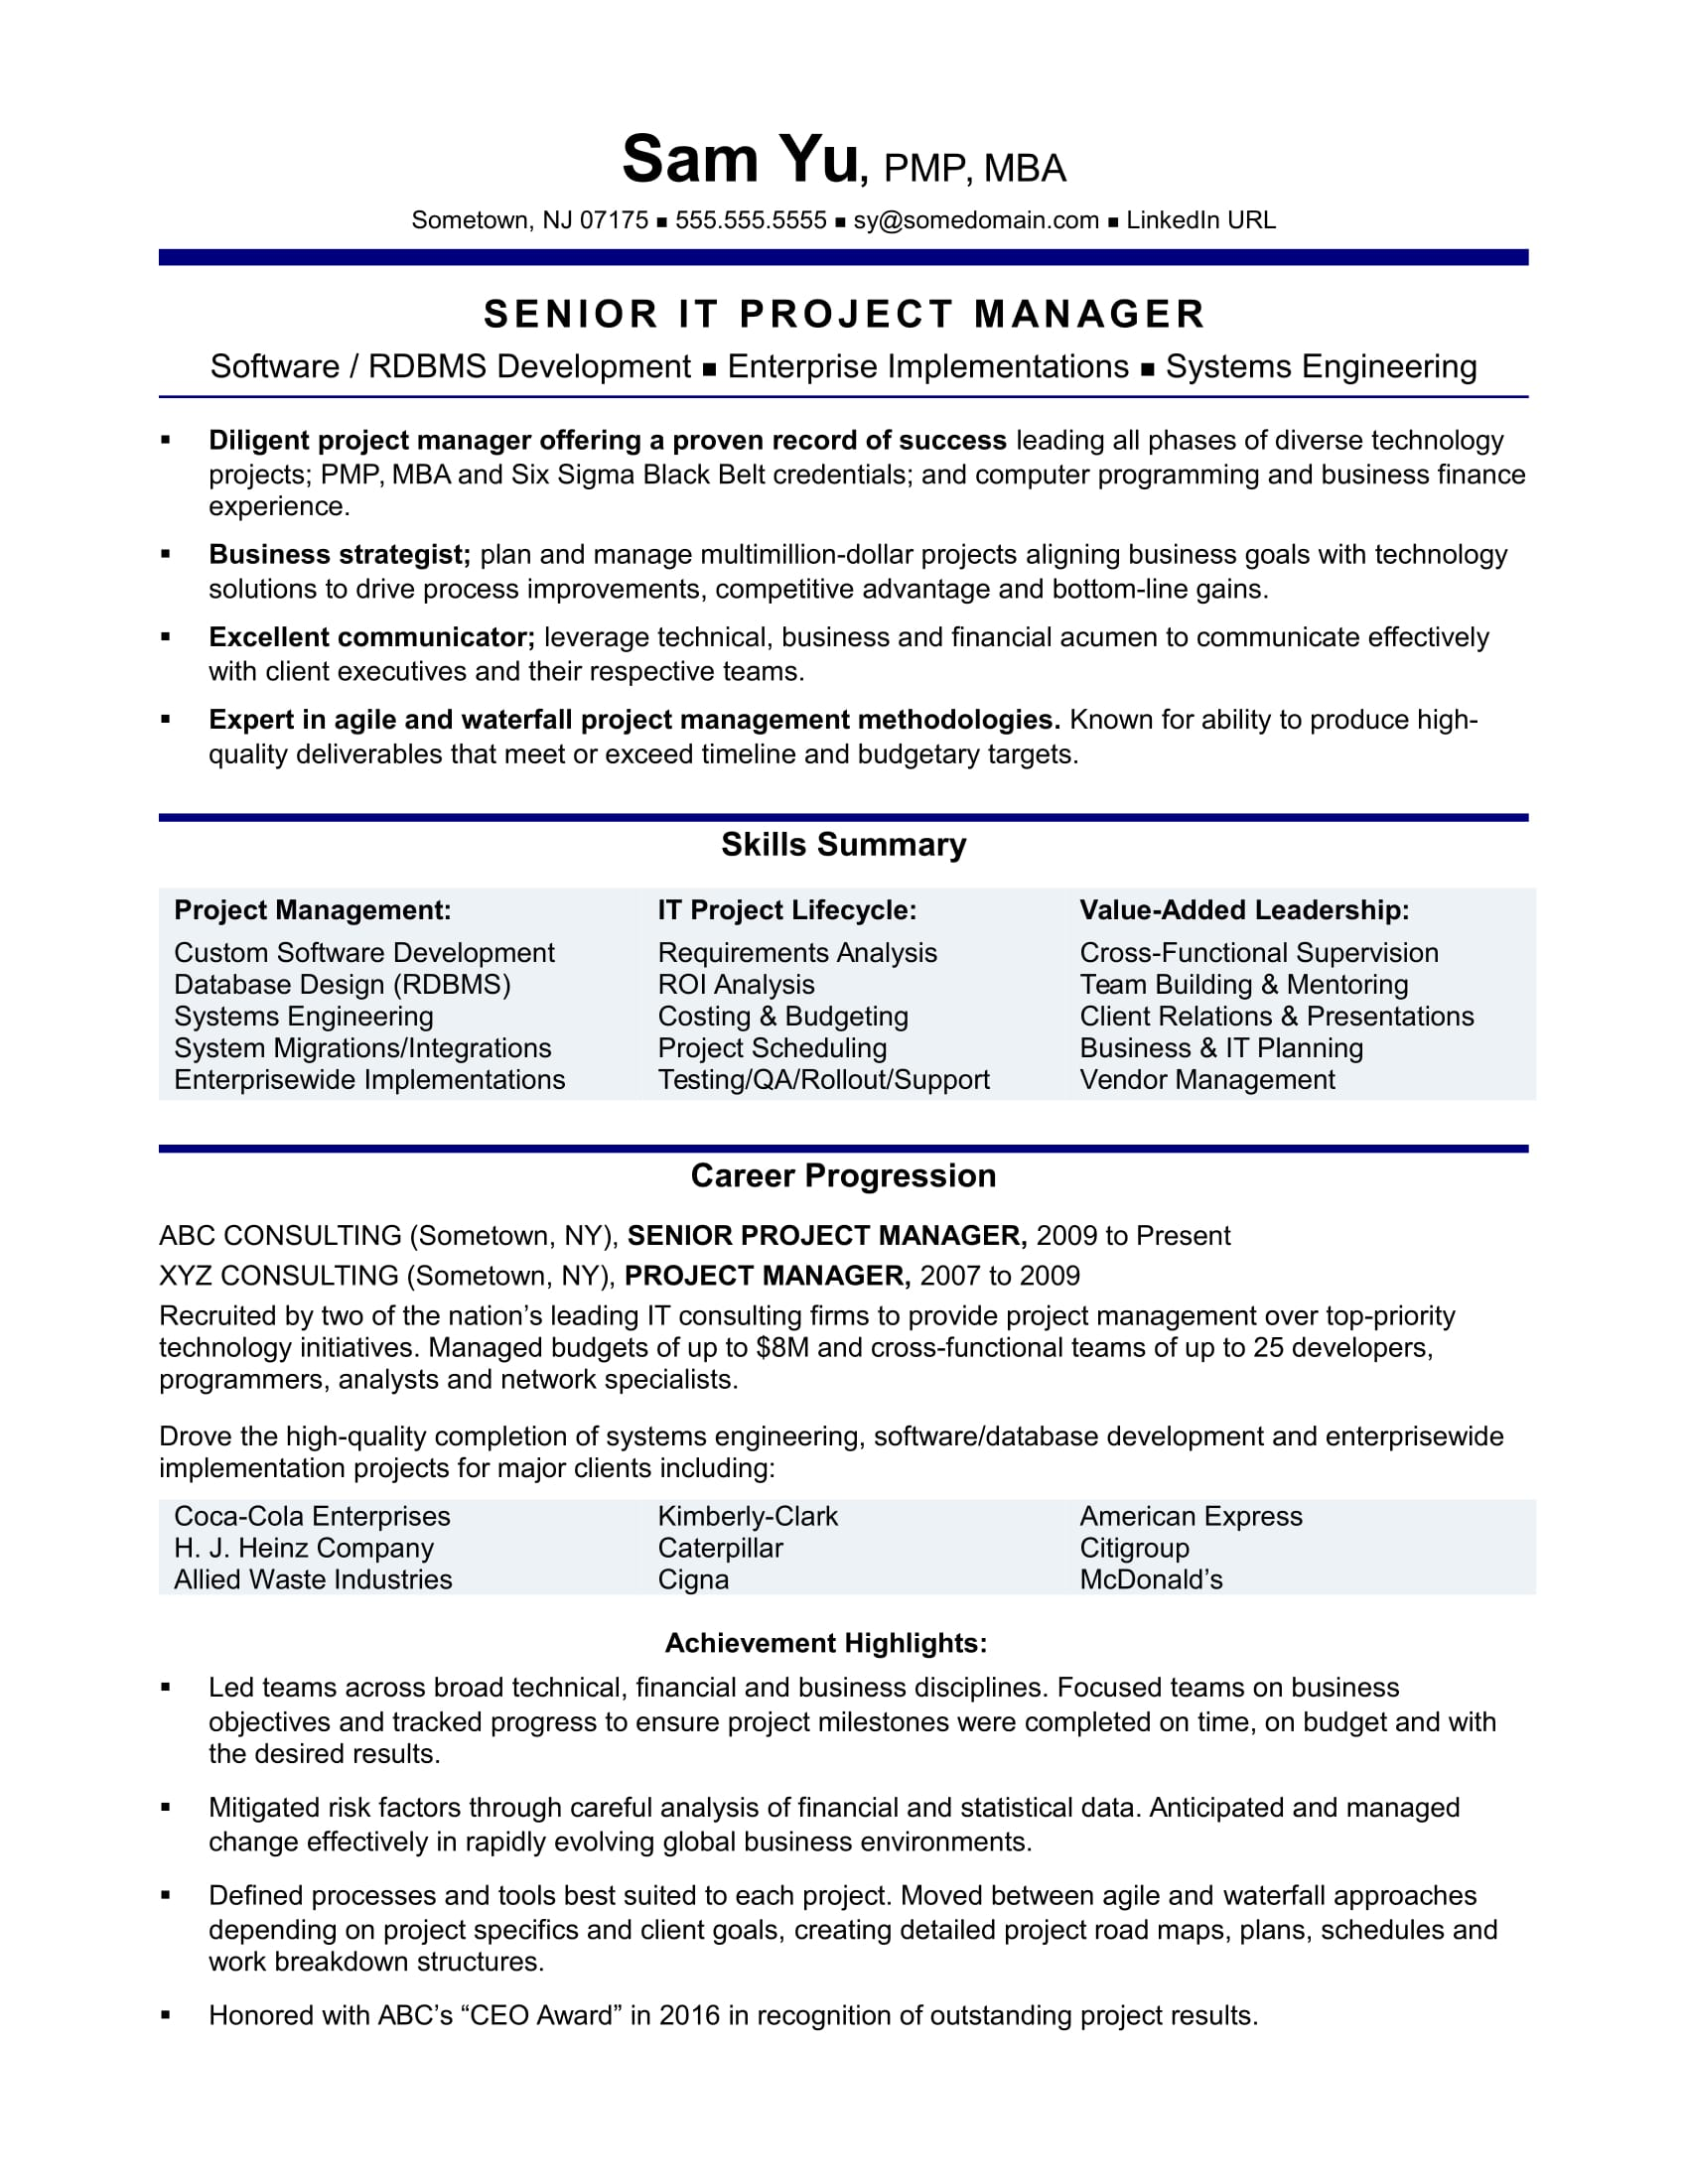 experienced project manager resumes